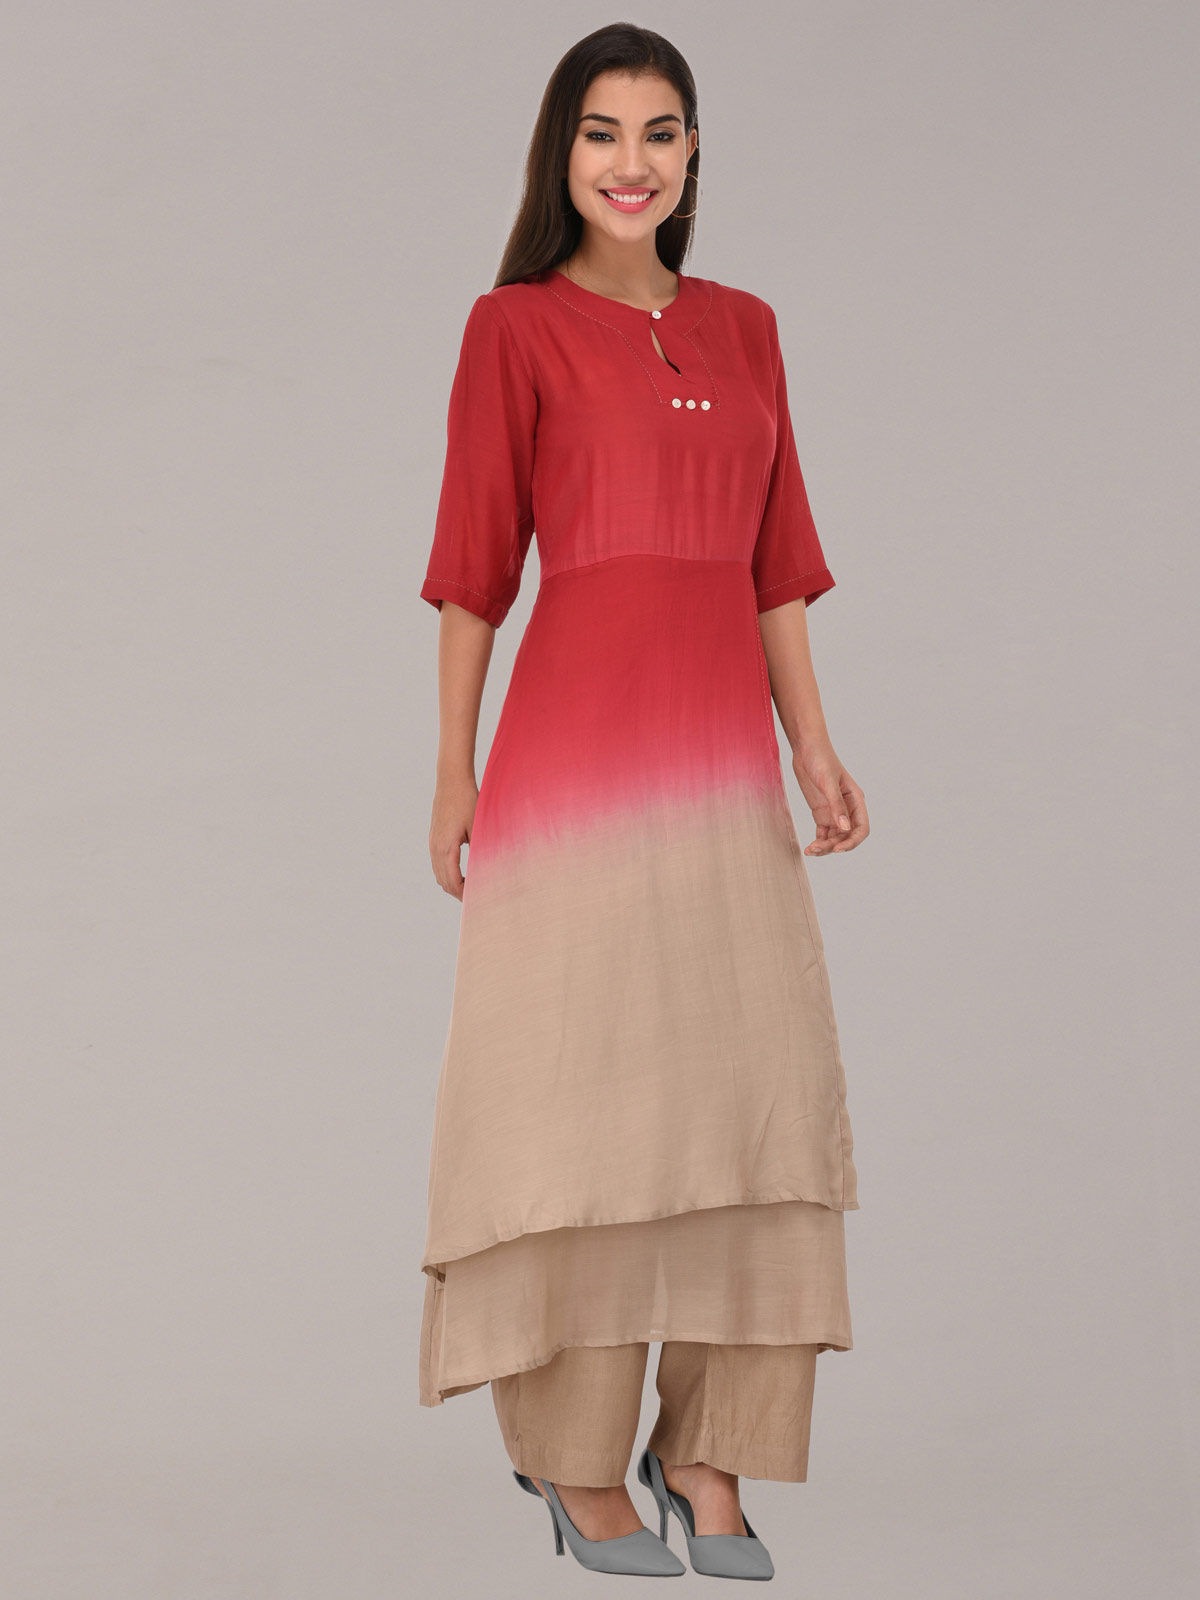 Modal ombre pink & beige tunic with bottom